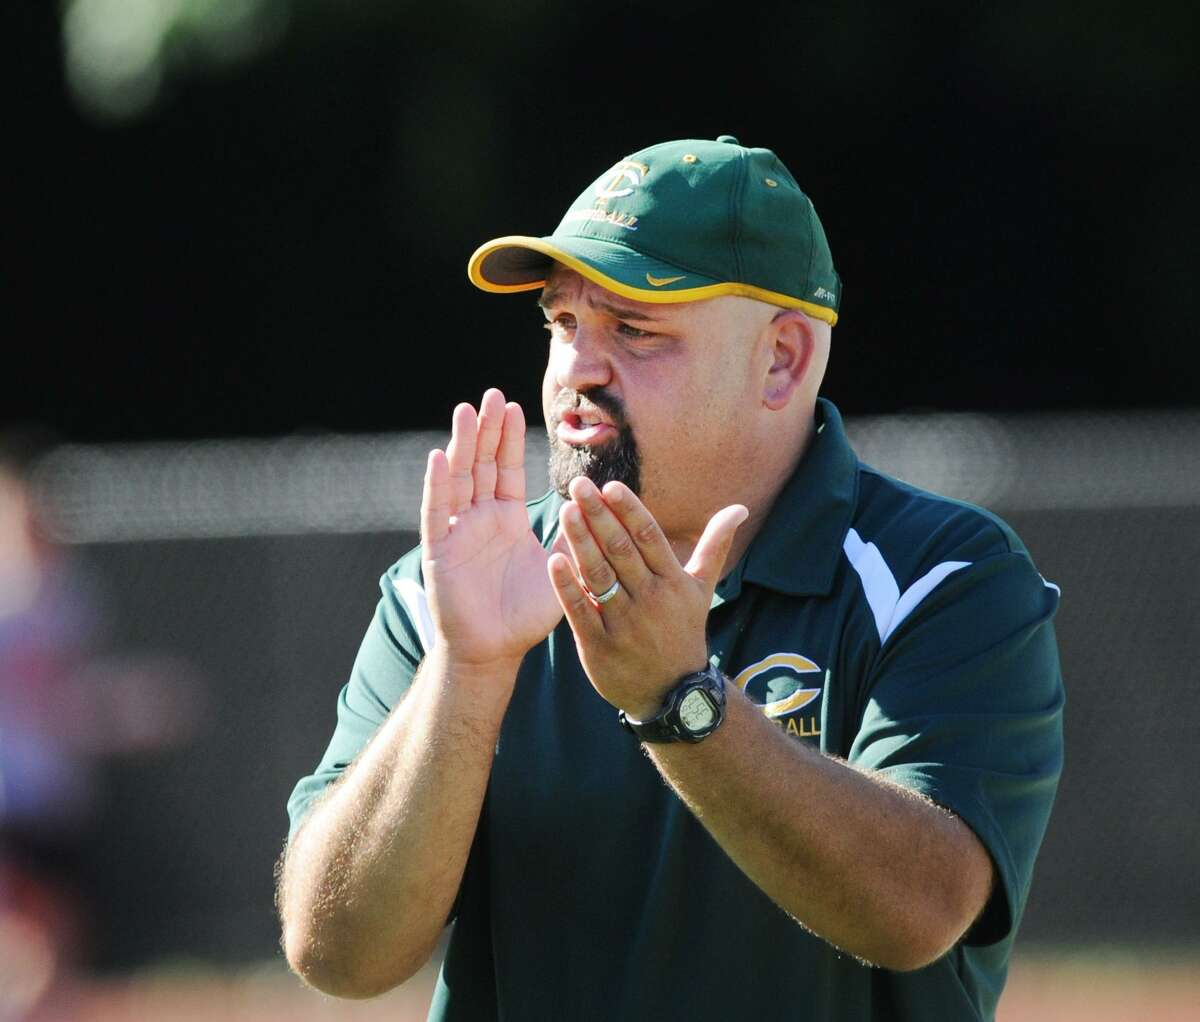 Donny Panapada, the Trinity Catholic High School football coach, during the game between Greenwich High School and Trinity Catholic High School at Greenwich, Conn., Saturday, Sept. 15, 2018.